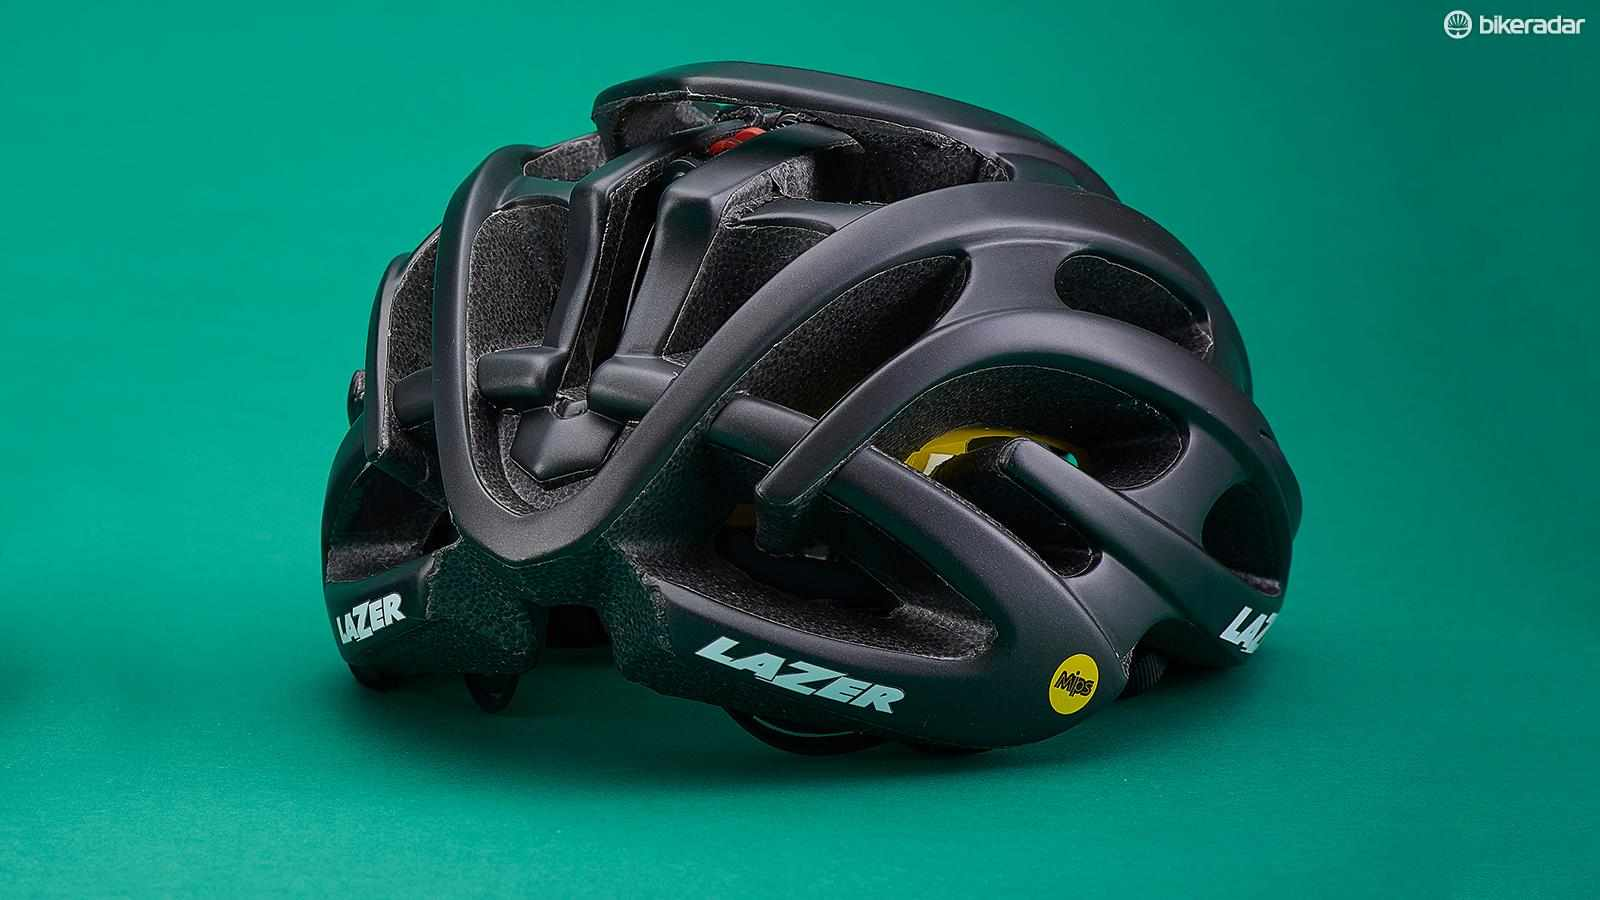 The Lazer Blade MIPS helmet